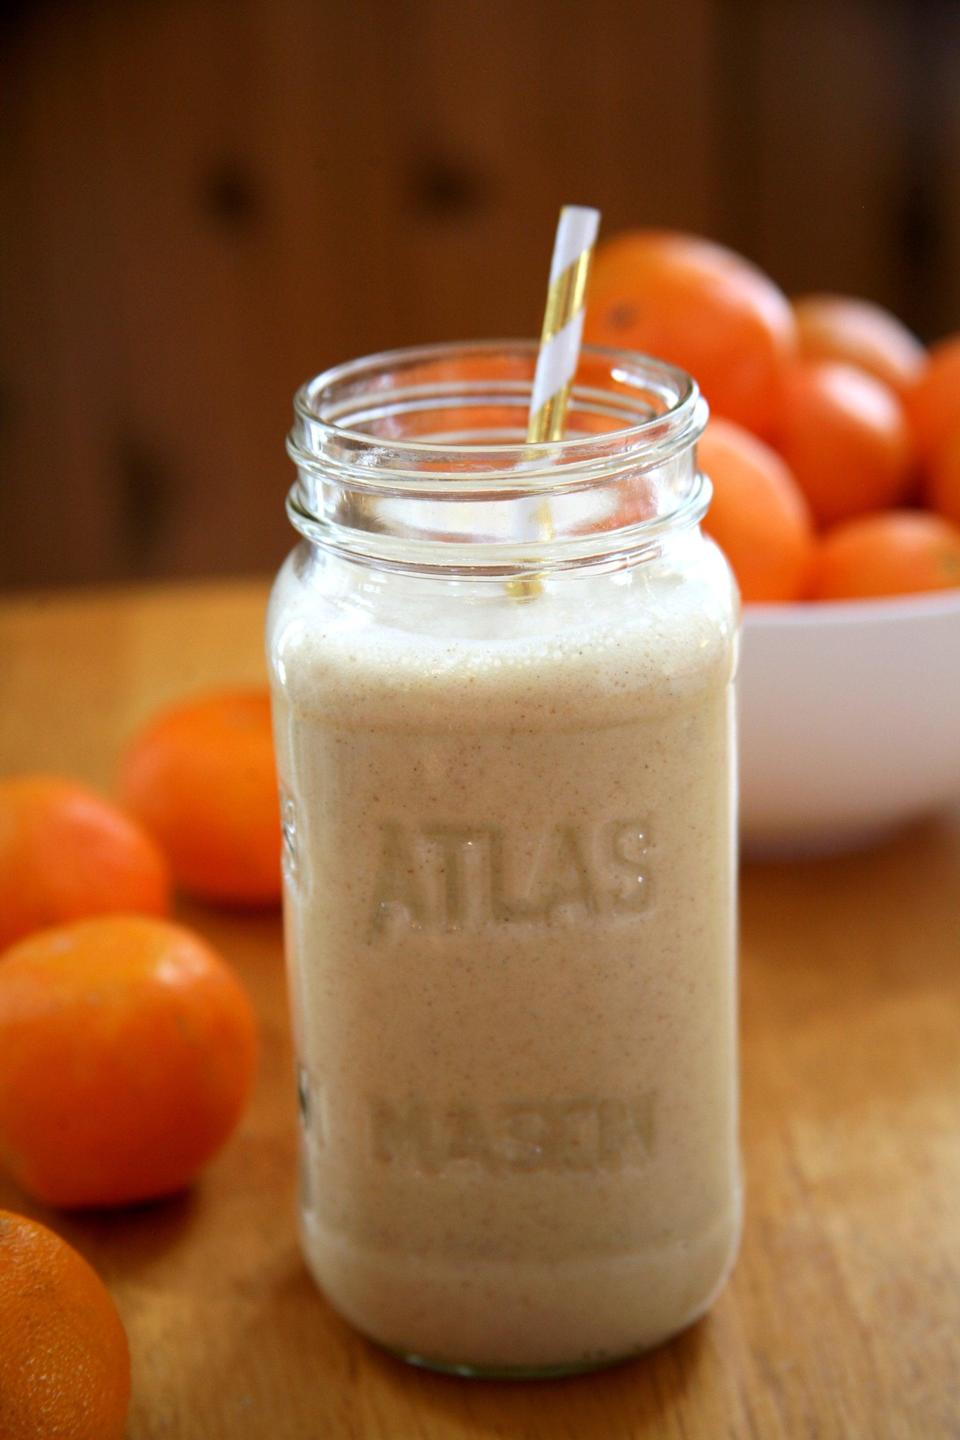 "<p>For the thrill-seeking, adventurous, and passionate Aries, start your day right with this zesty citrus smoothie.</p> <p><strong>Get the recipe:</strong> <a href=""https://www.popsugar.com/fitness/Clementine-Protein-Smoothie-42794673"" class=""link rapid-noclick-resp"" rel=""nofollow noopener"" target=""_blank"" data-ylk=""slk:vanilla clementine smoothie"">vanilla clementine smoothie</a></p>"